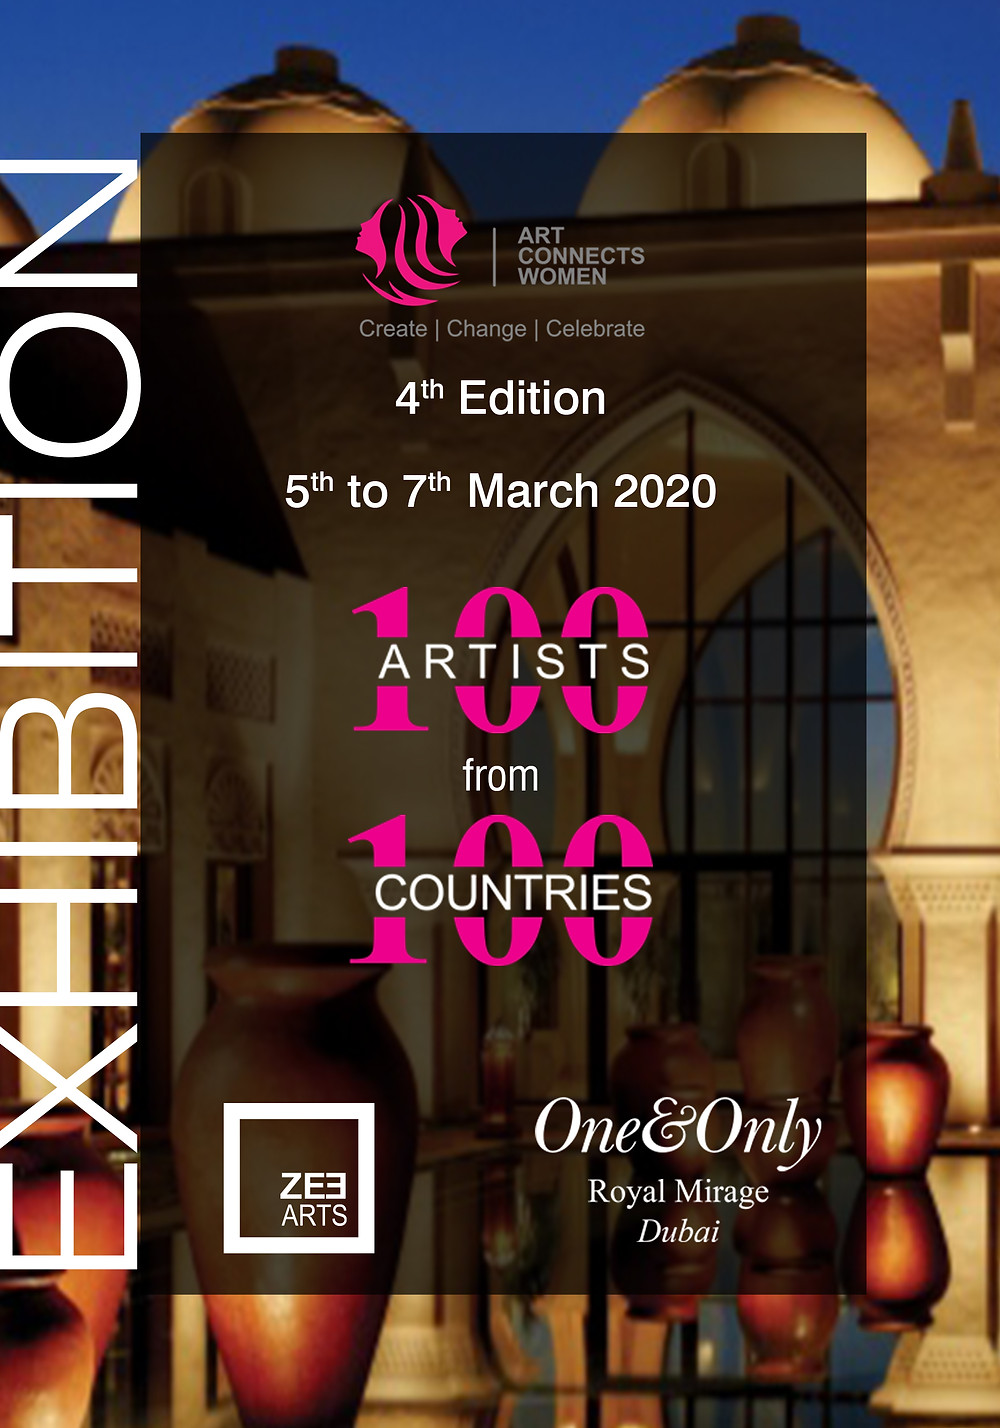 Art Herald Magazine, Art Connects Women International Exhibition, ZeeArts, Dubai, One&Only Royal Mirage